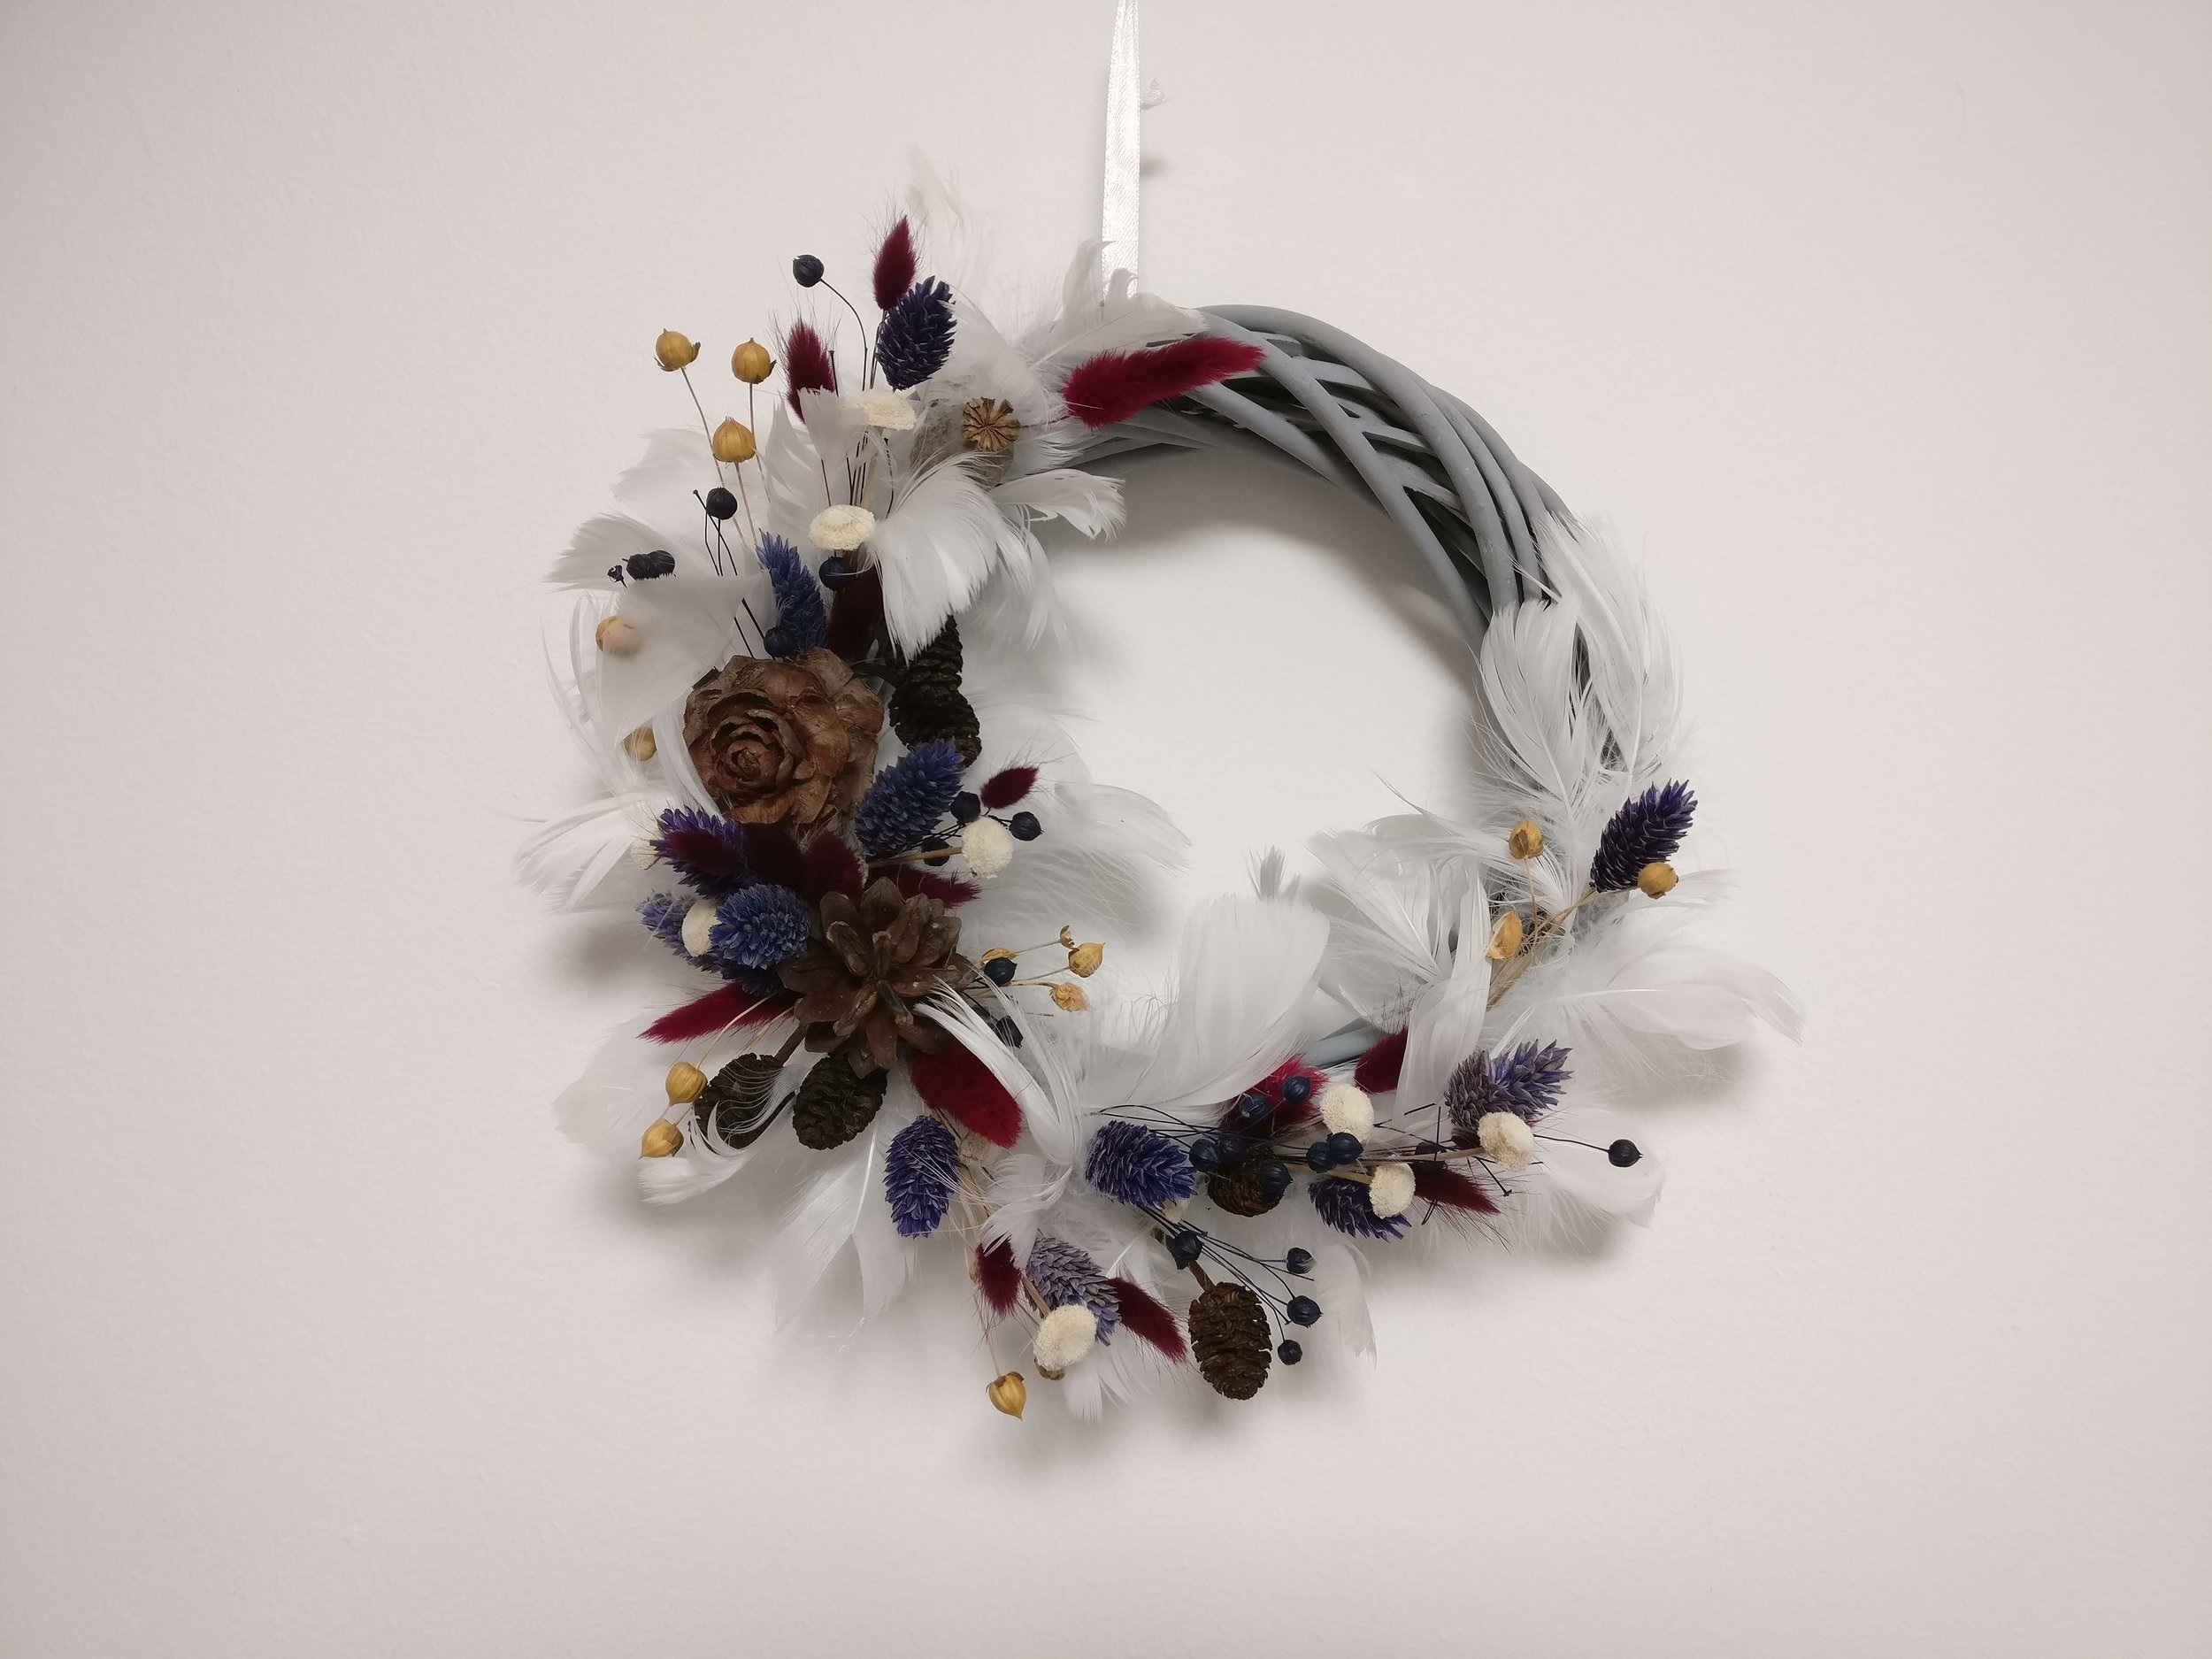 - Bunchilia Floral Design15th DecemberHandmade floral accessories. Need a Christmas wreath still? You'll find one here.